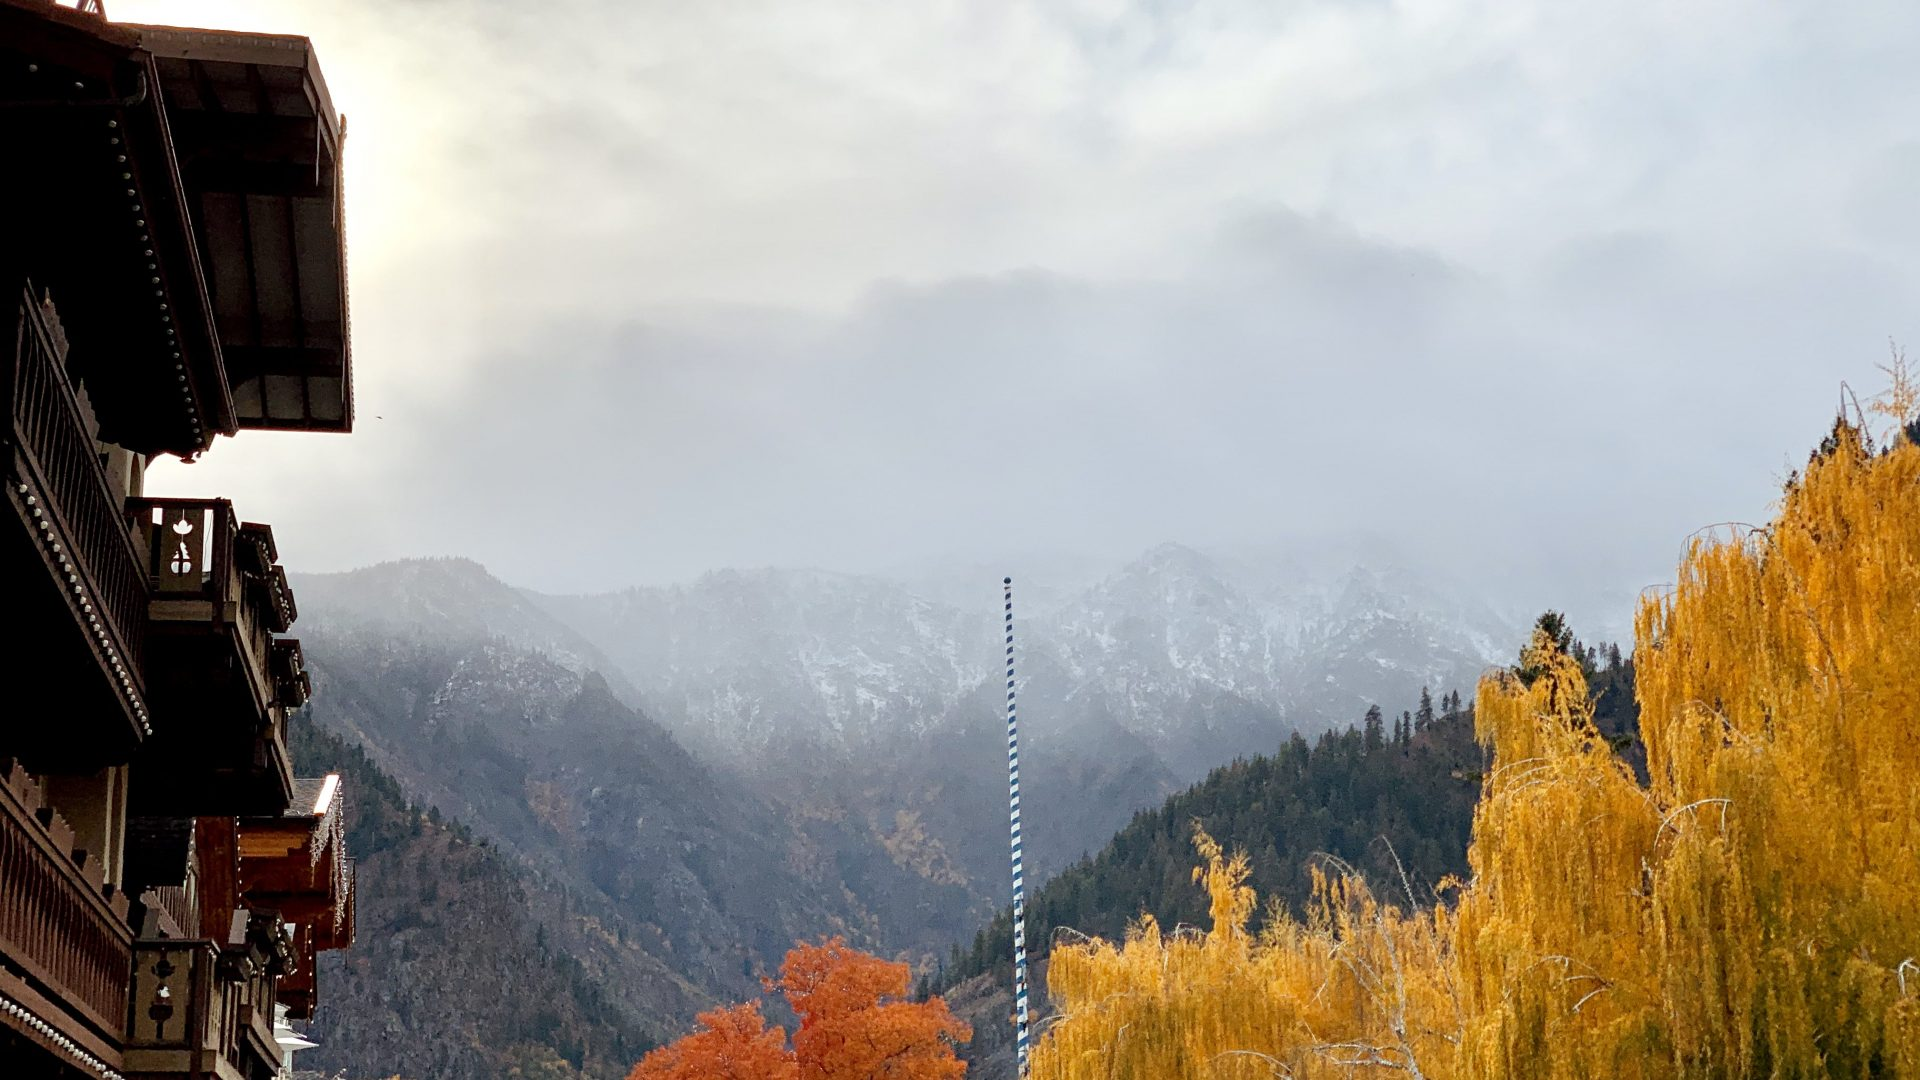 Fall colors and foliage in Leavenworth